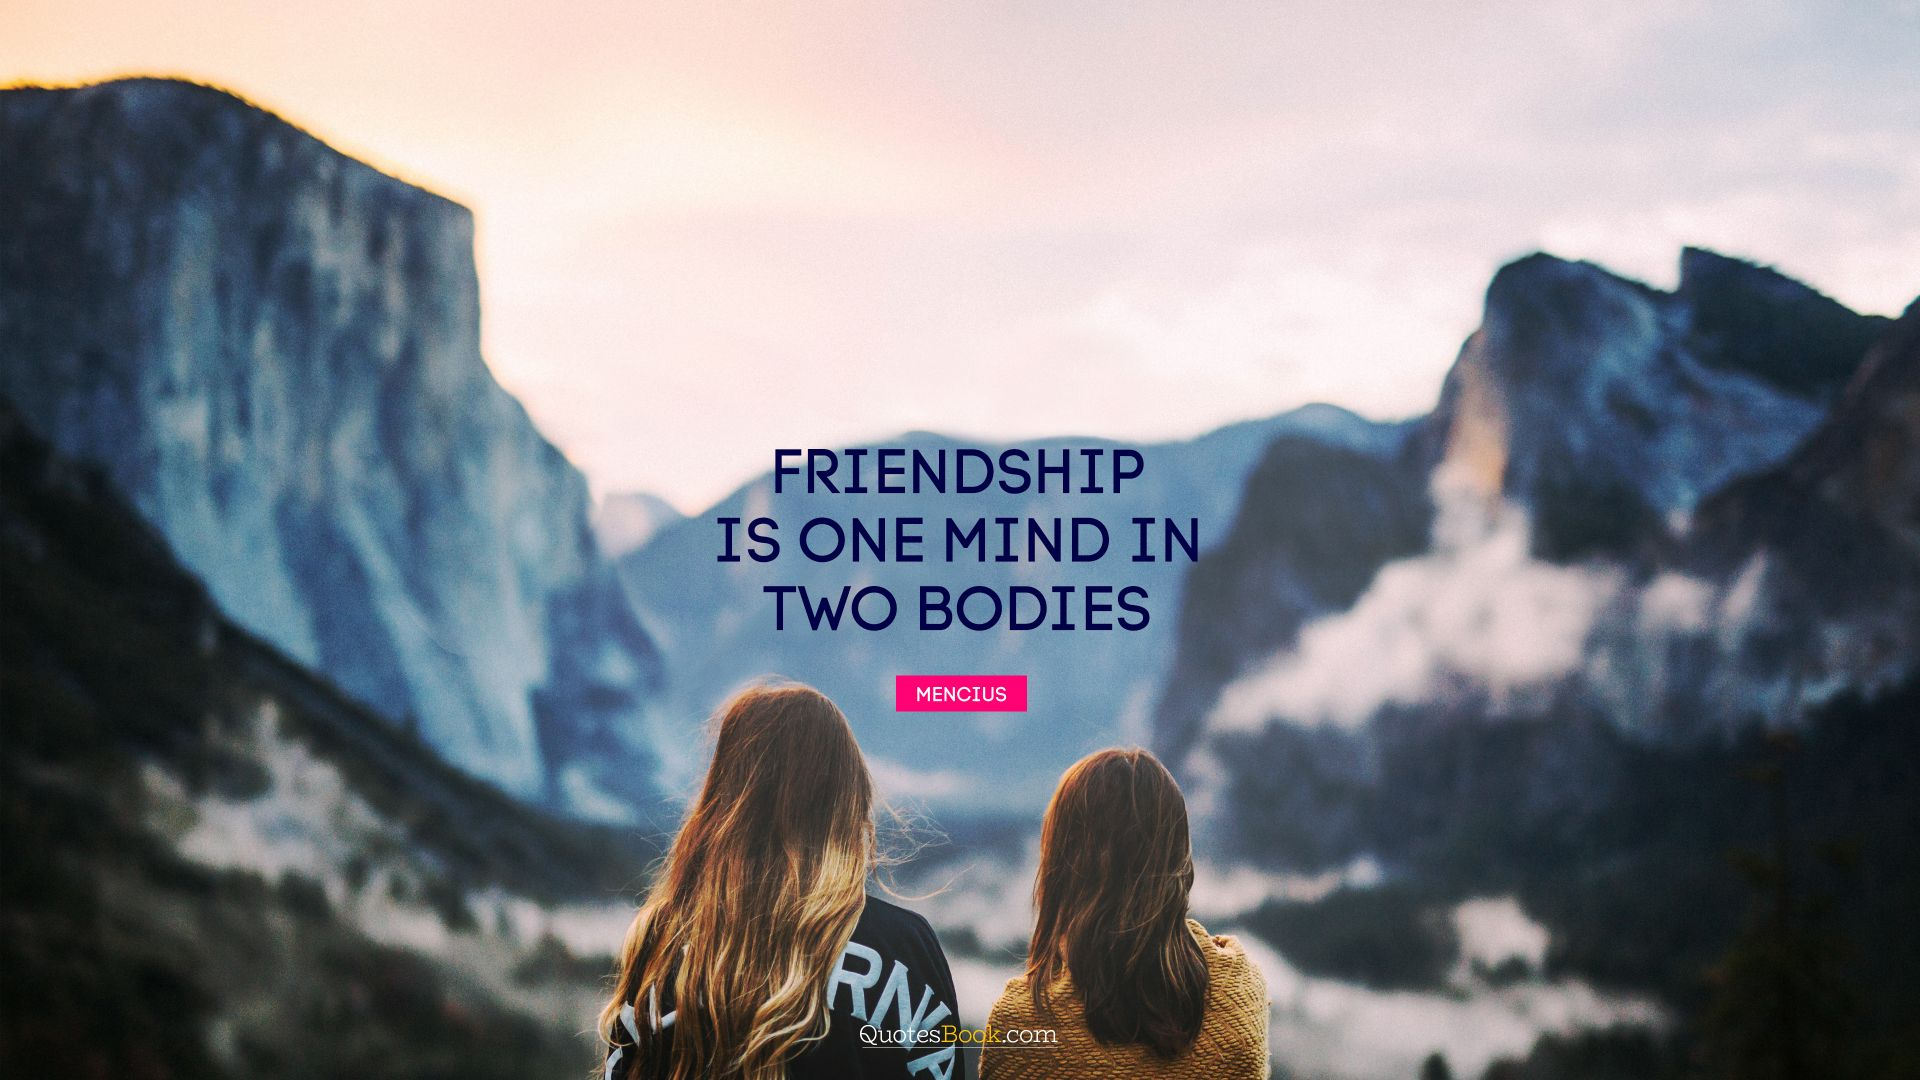 Friendship is one mind in two bodies. - Quote by Mencius